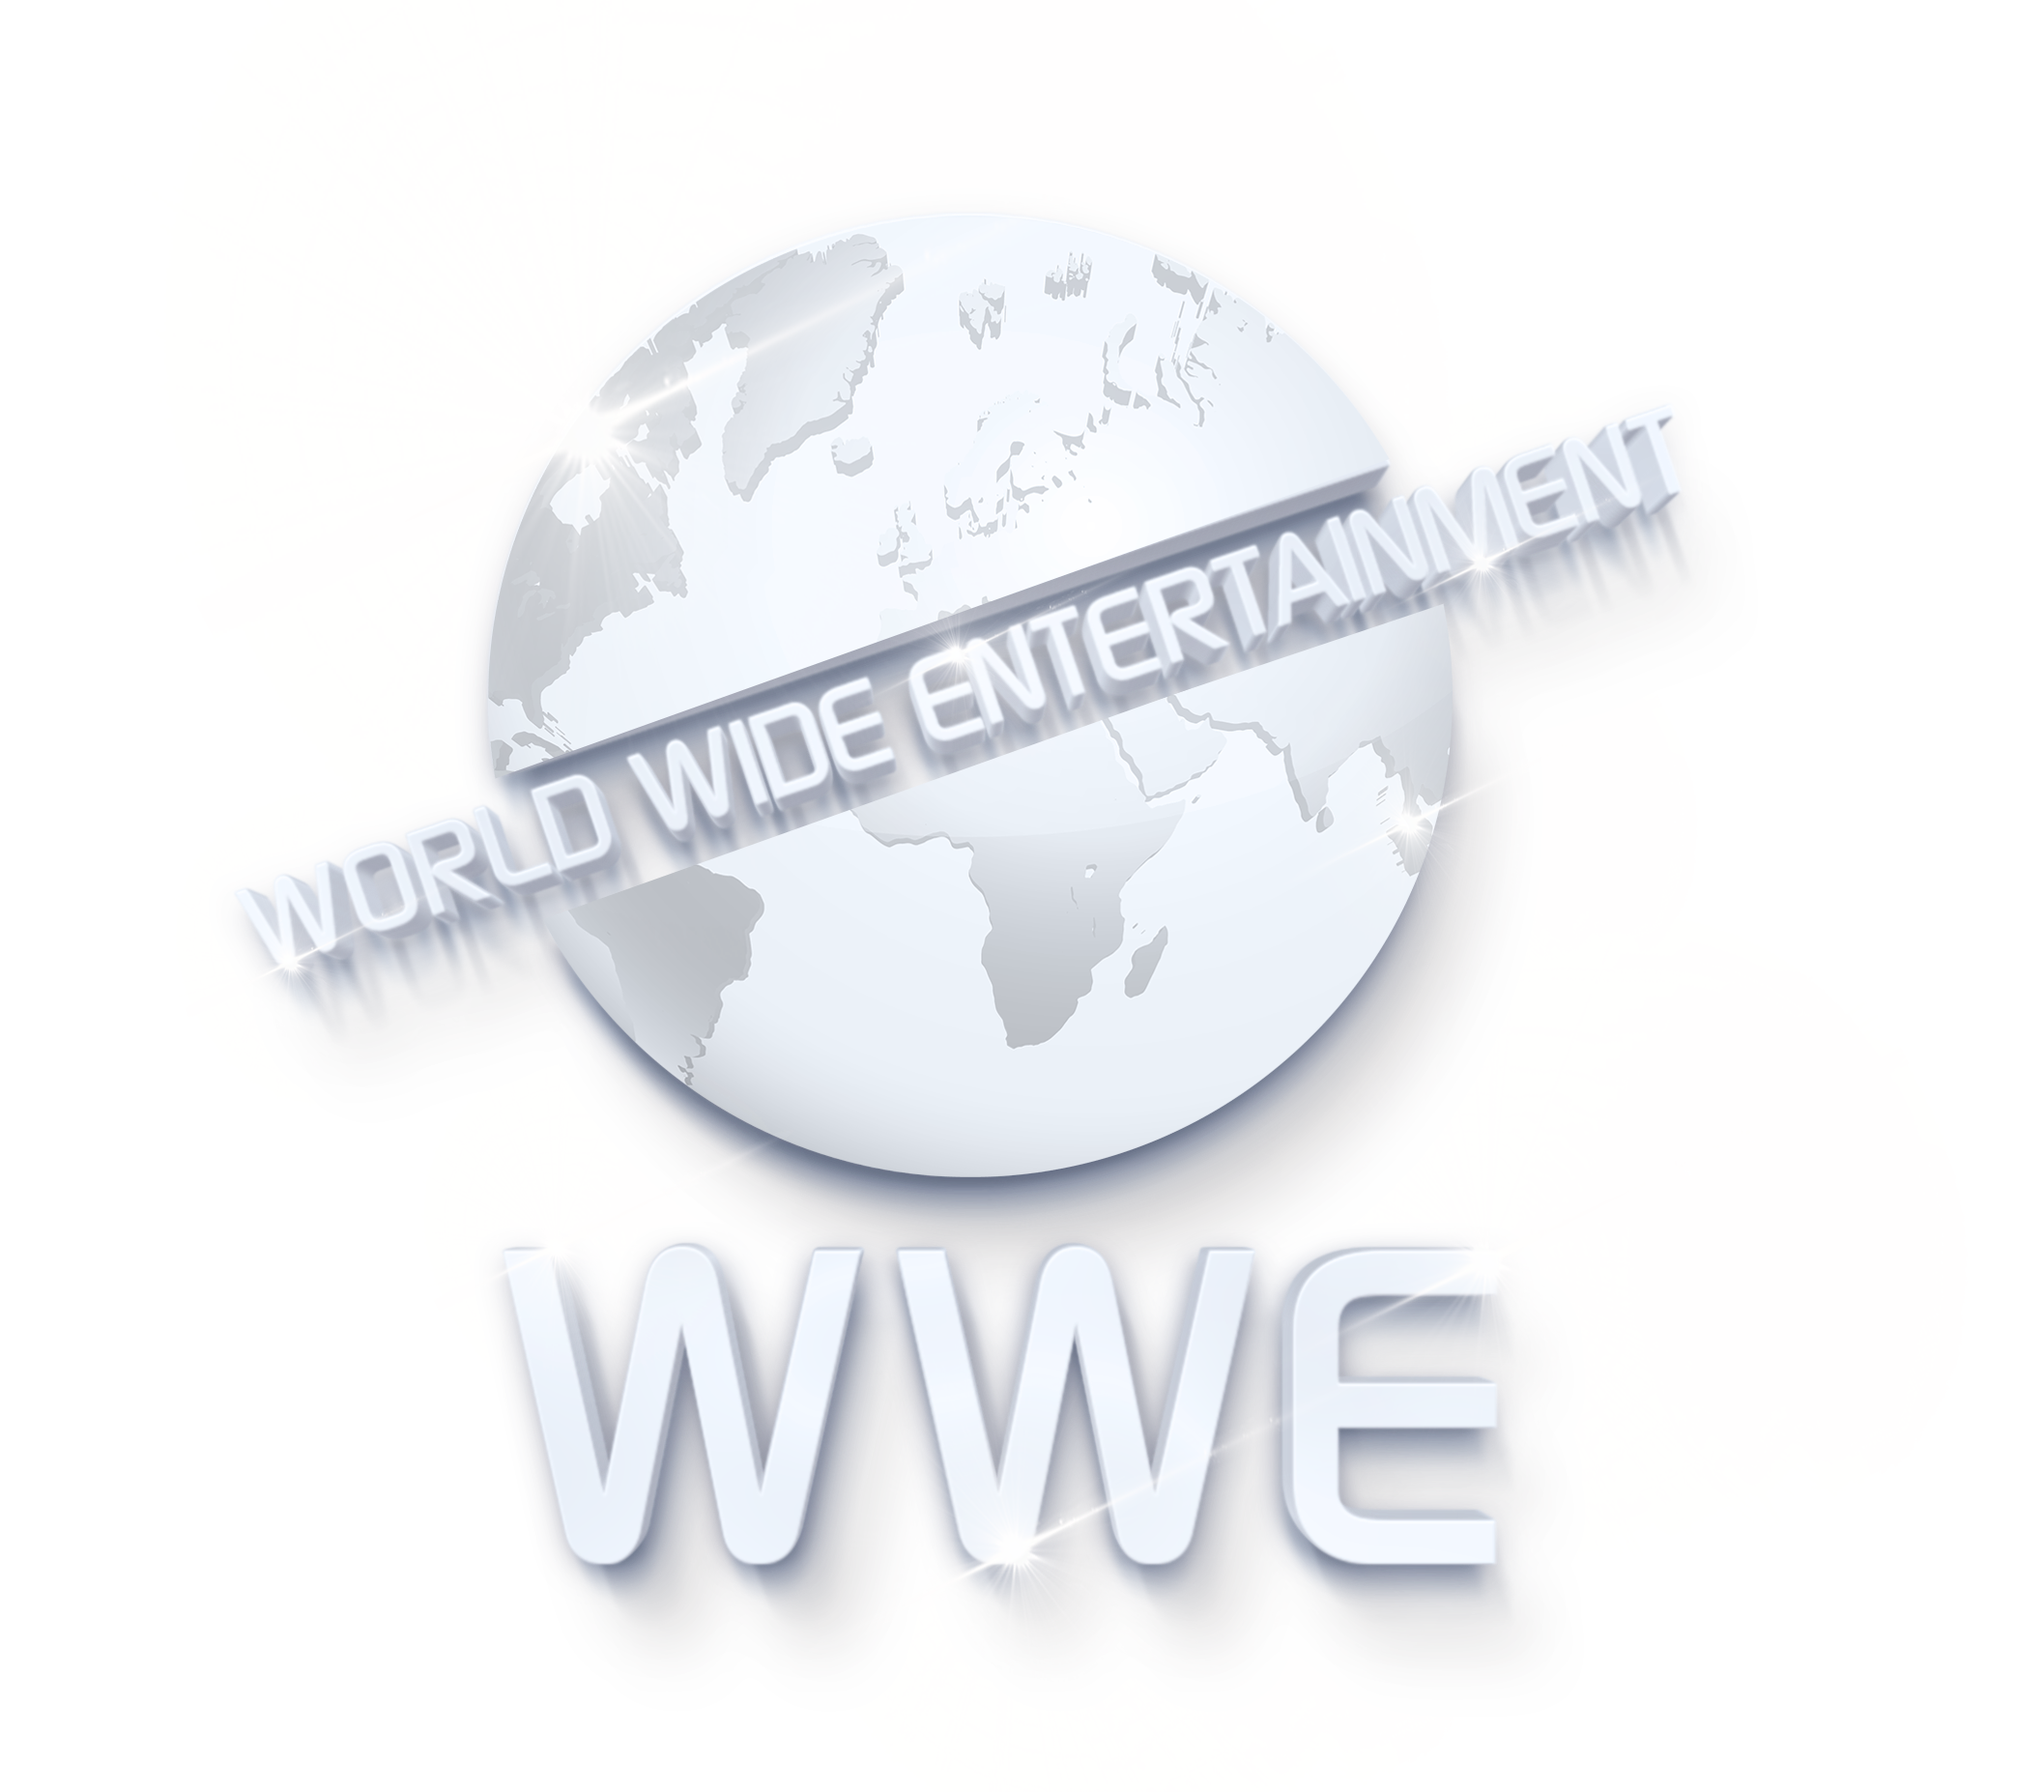 WWE -The International Event Agency